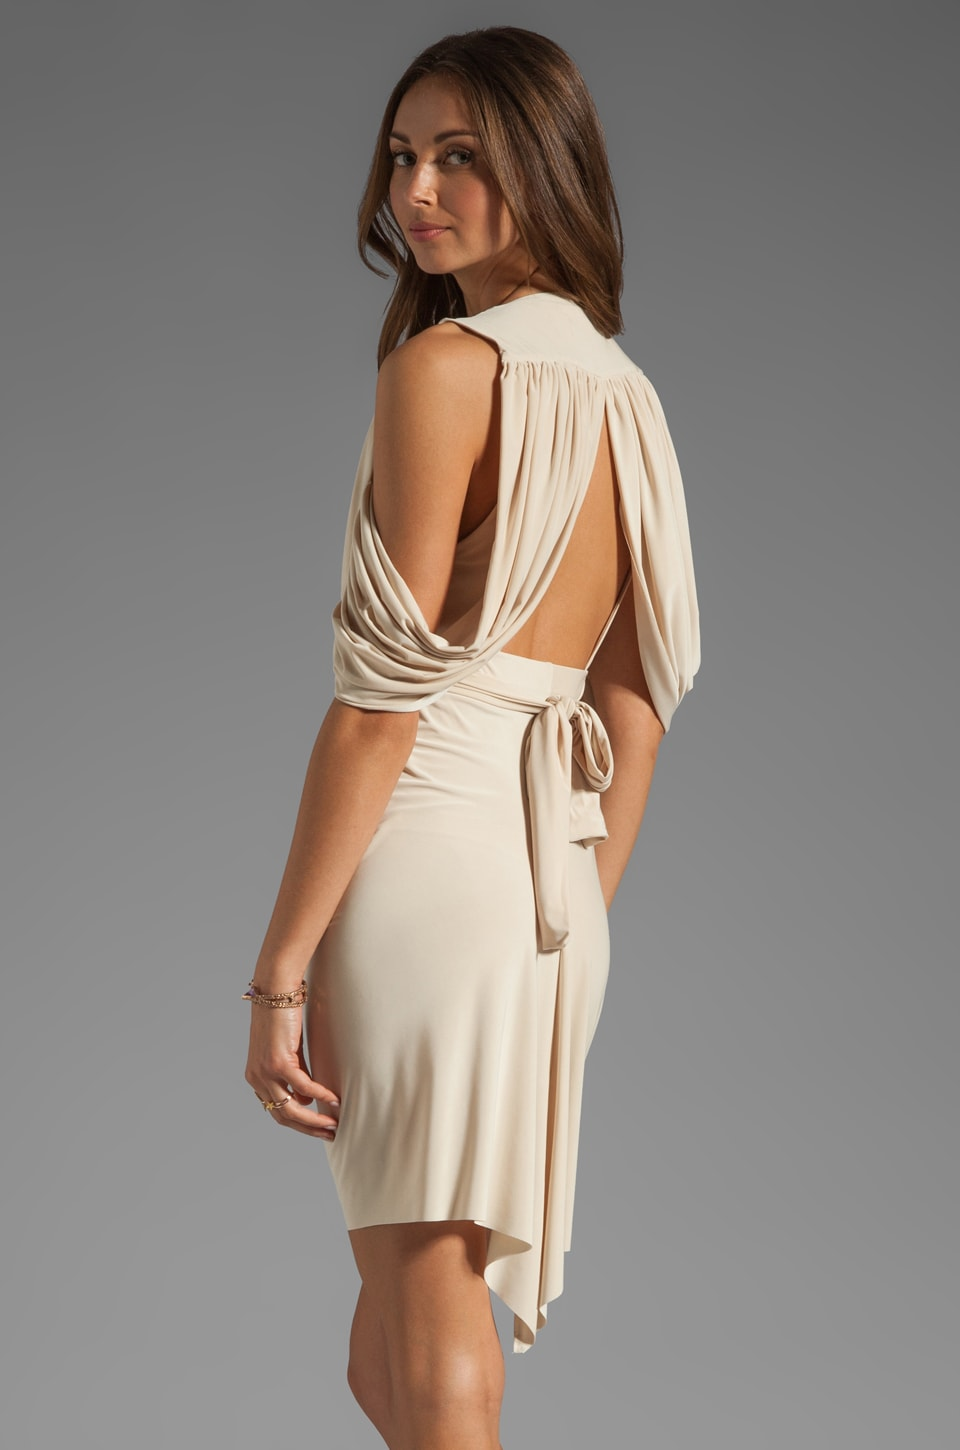 T-Bags LosAngeles Drape Back Dress in Cream